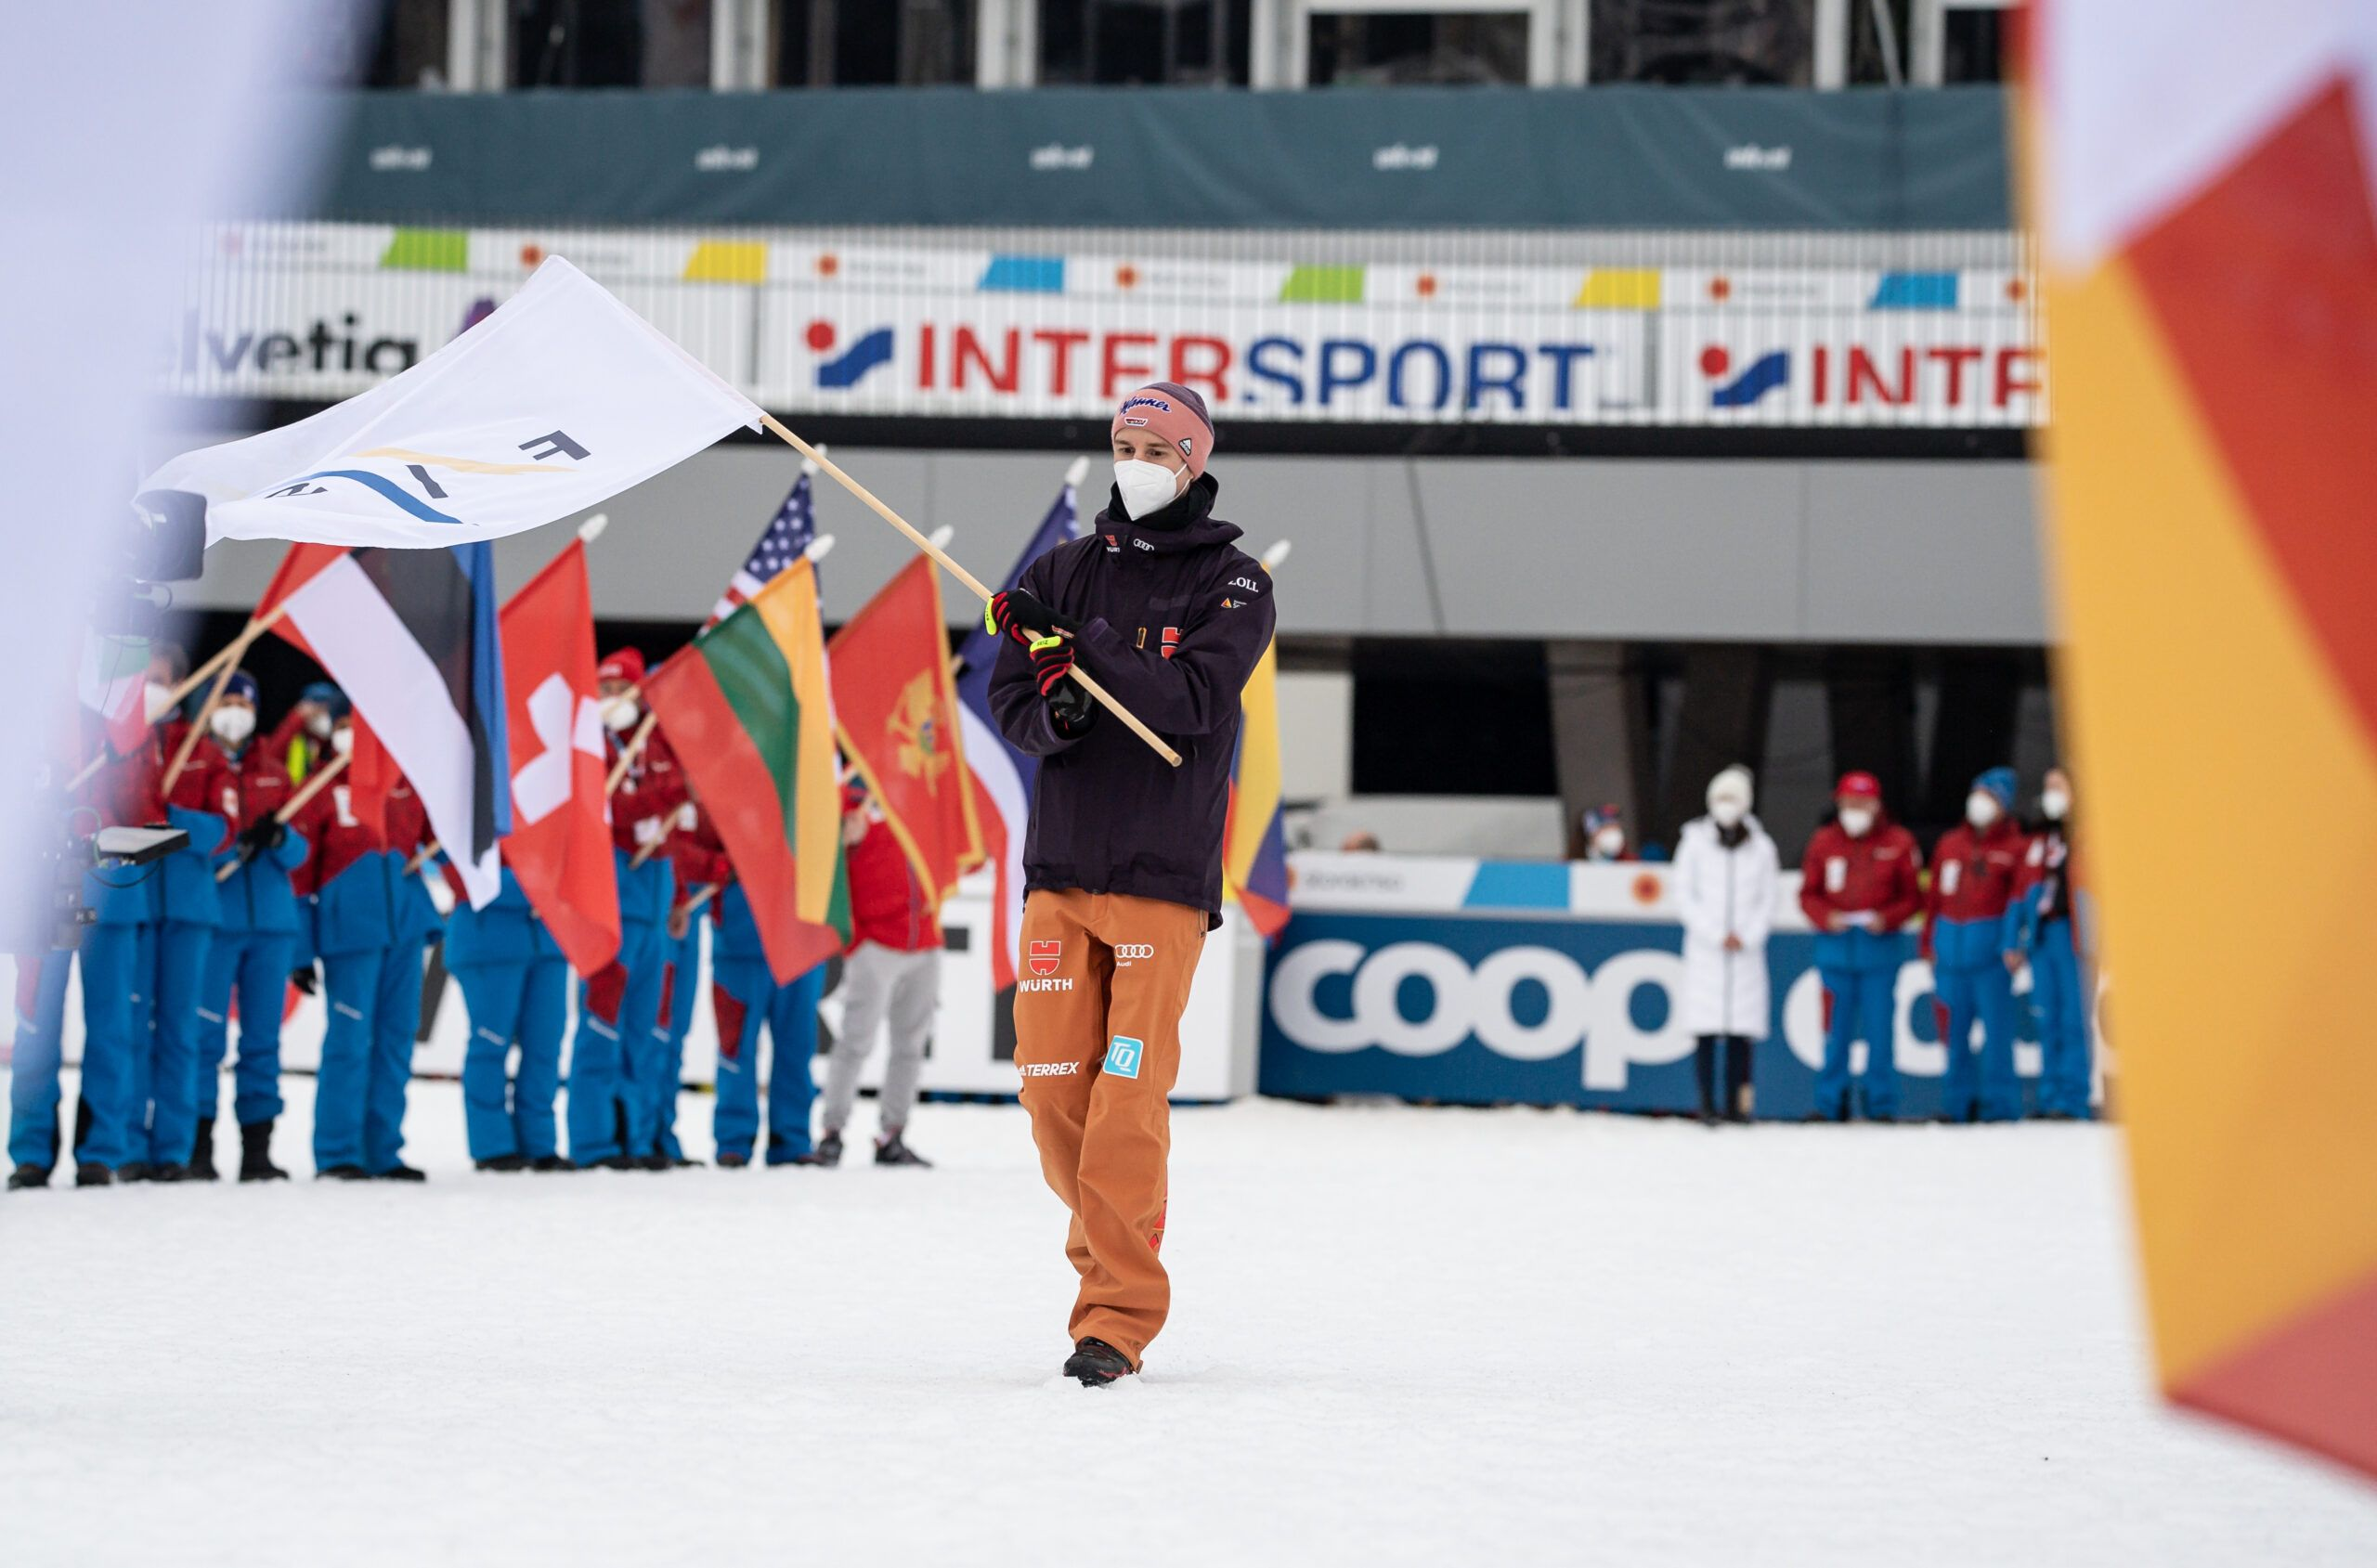 Arl Geiger Of Germany Carries The Fis Flag During The Closing Ceremony Scaled